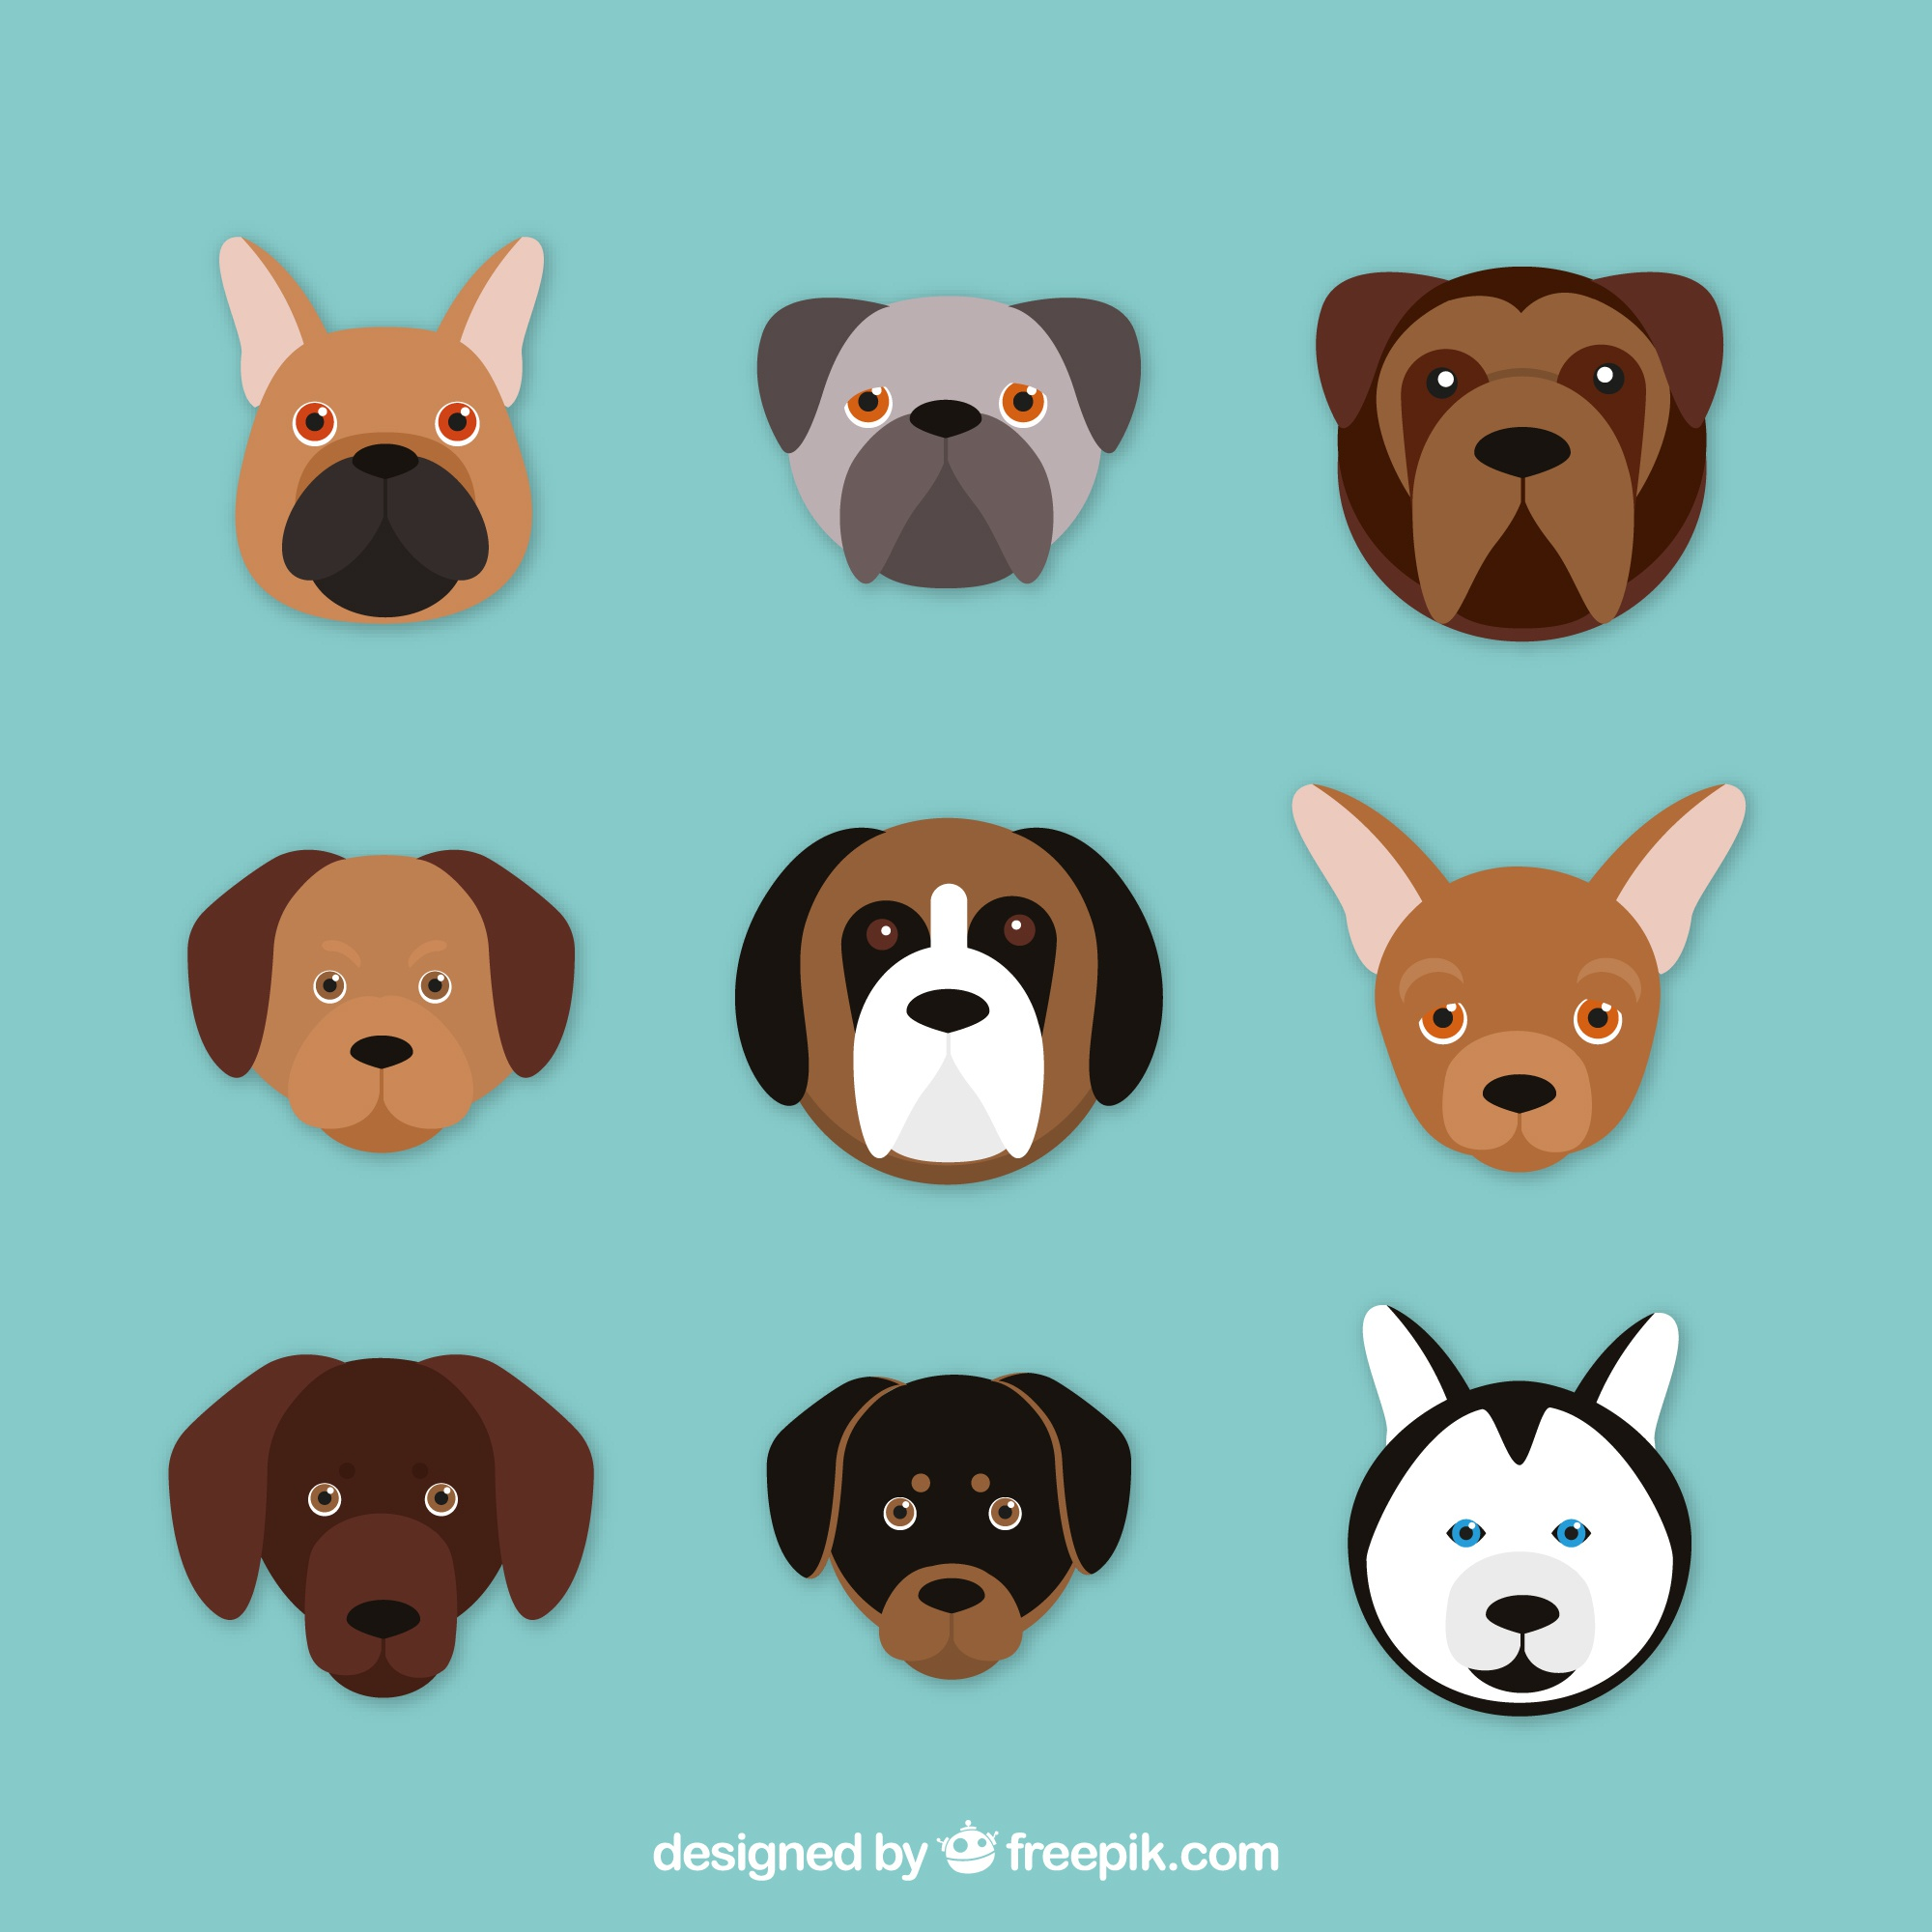 Assortment of nine dogs of different breeds